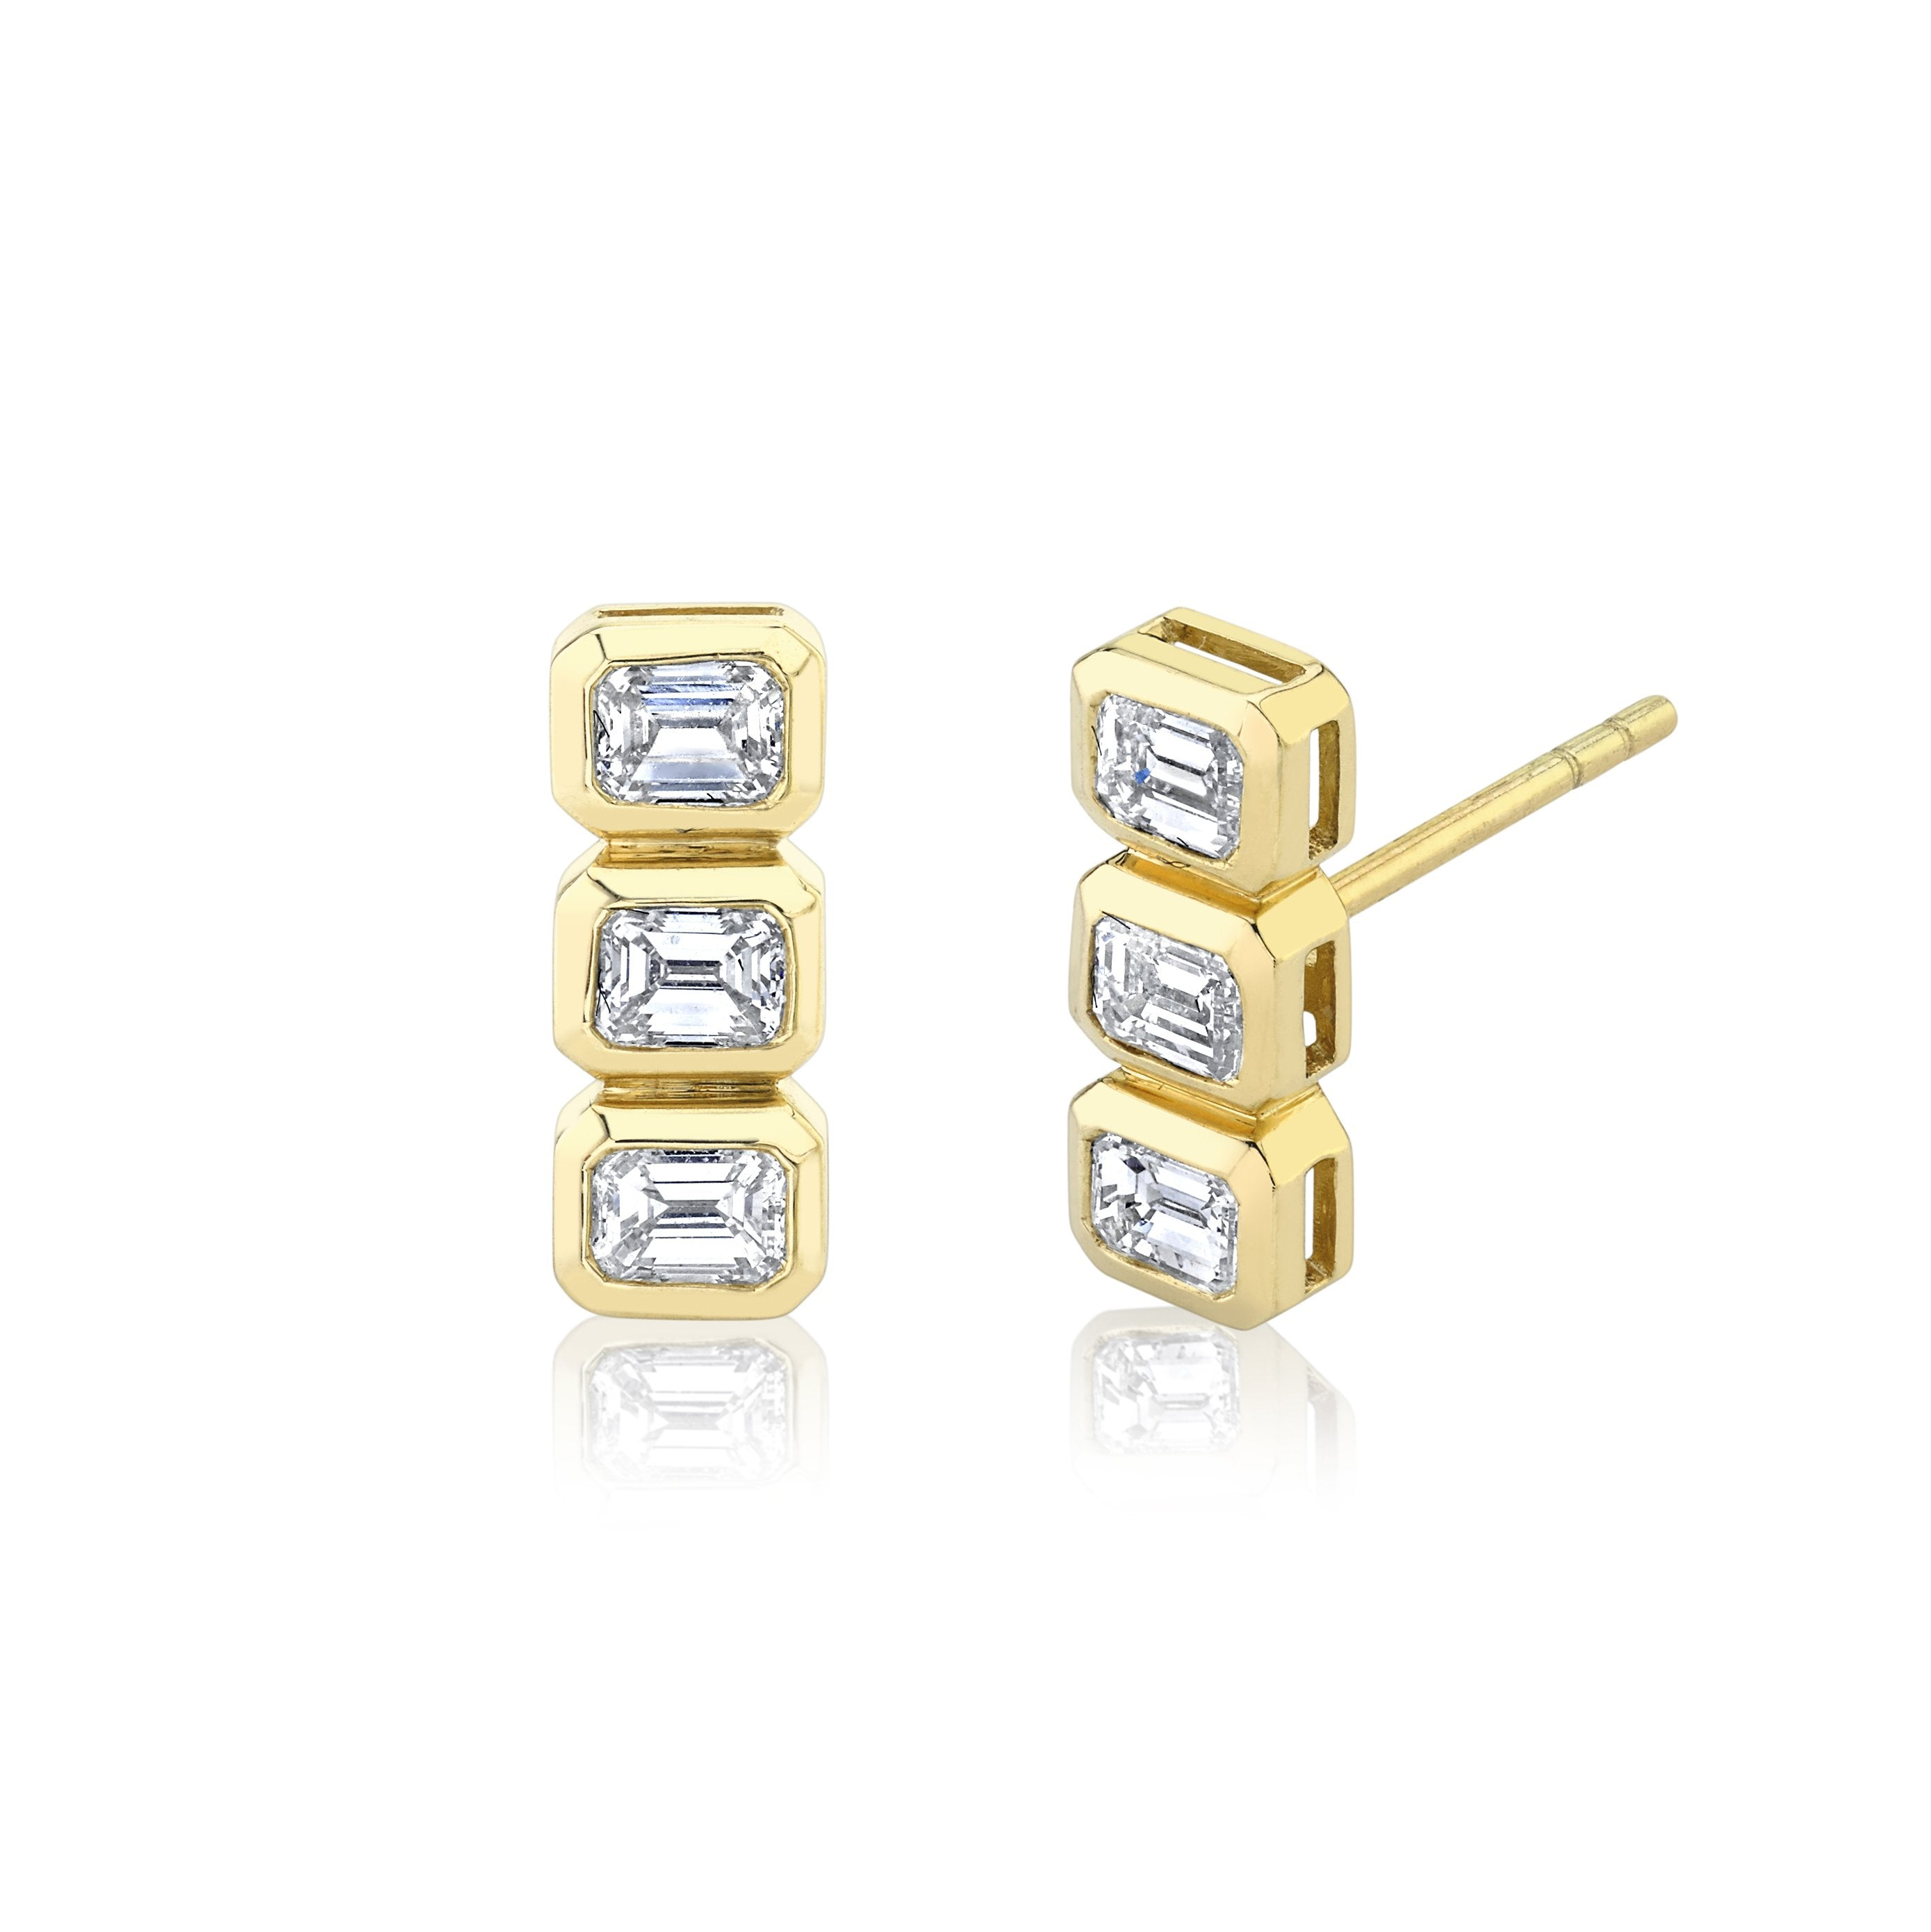 NEW! Three Emerald Cut Diamond Studs